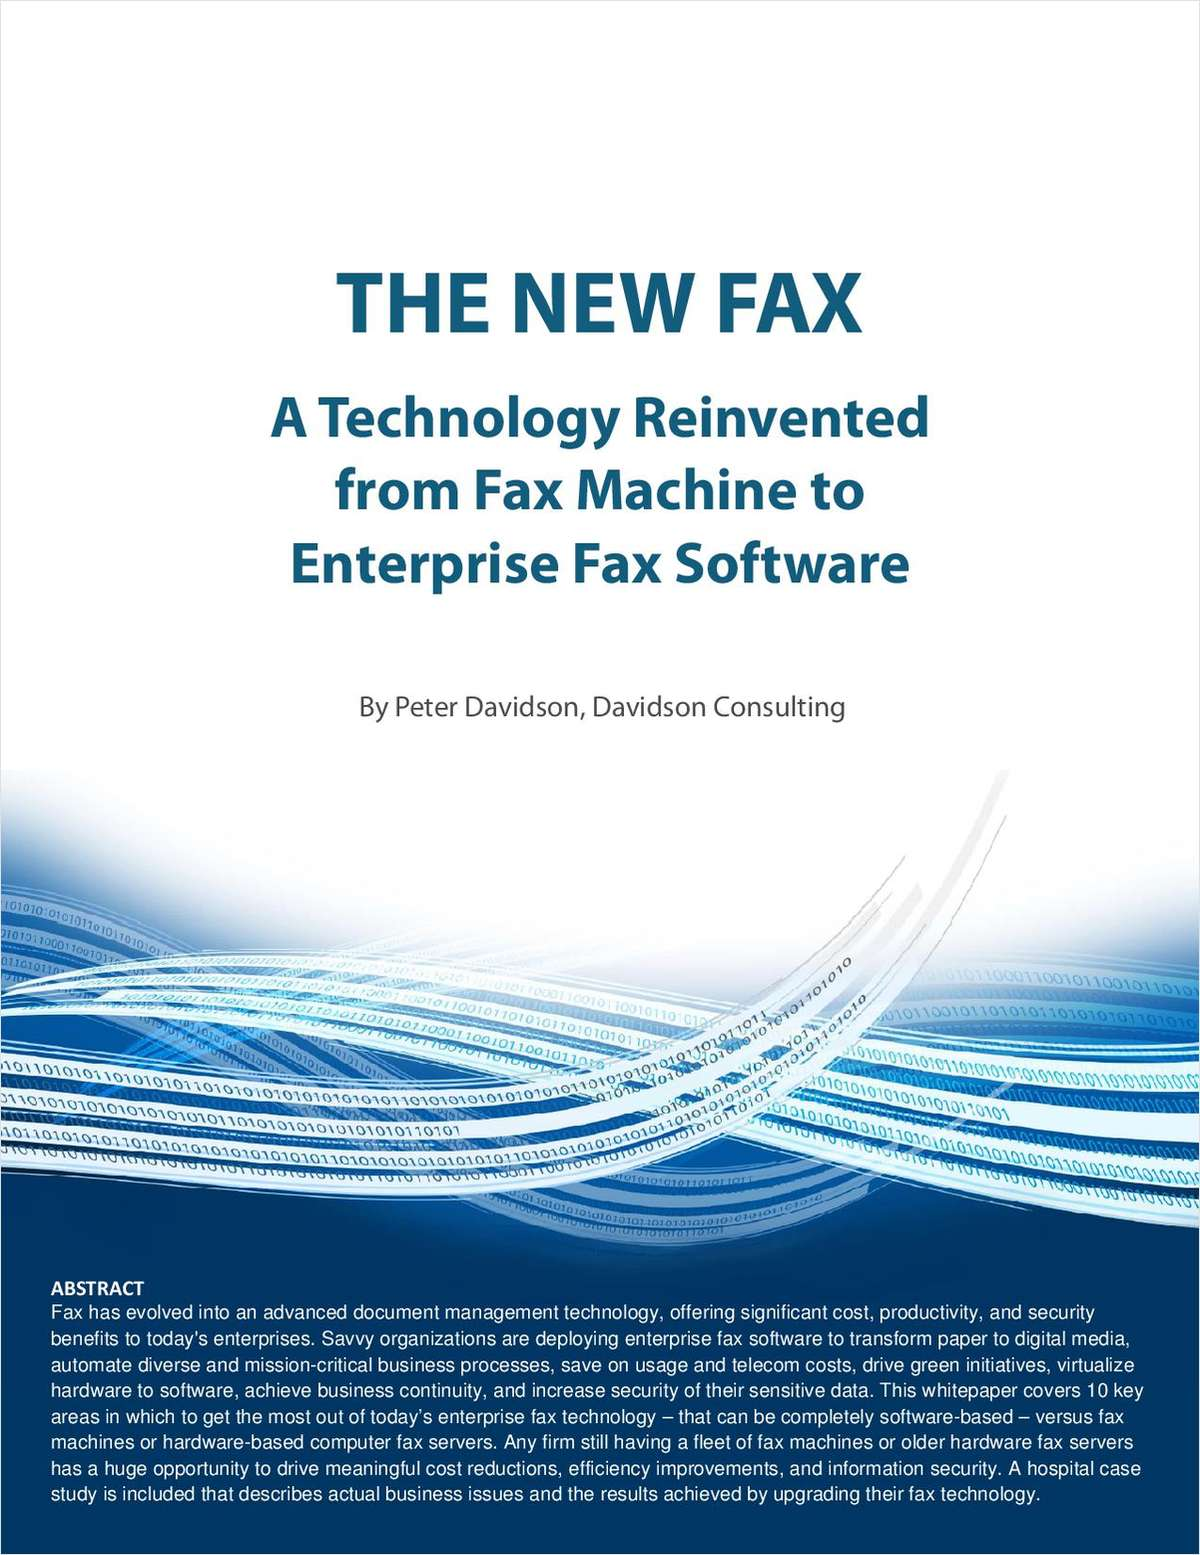 The New Fax -- A Technology Reinvented from Fax Machine to Enterprise Fax Software